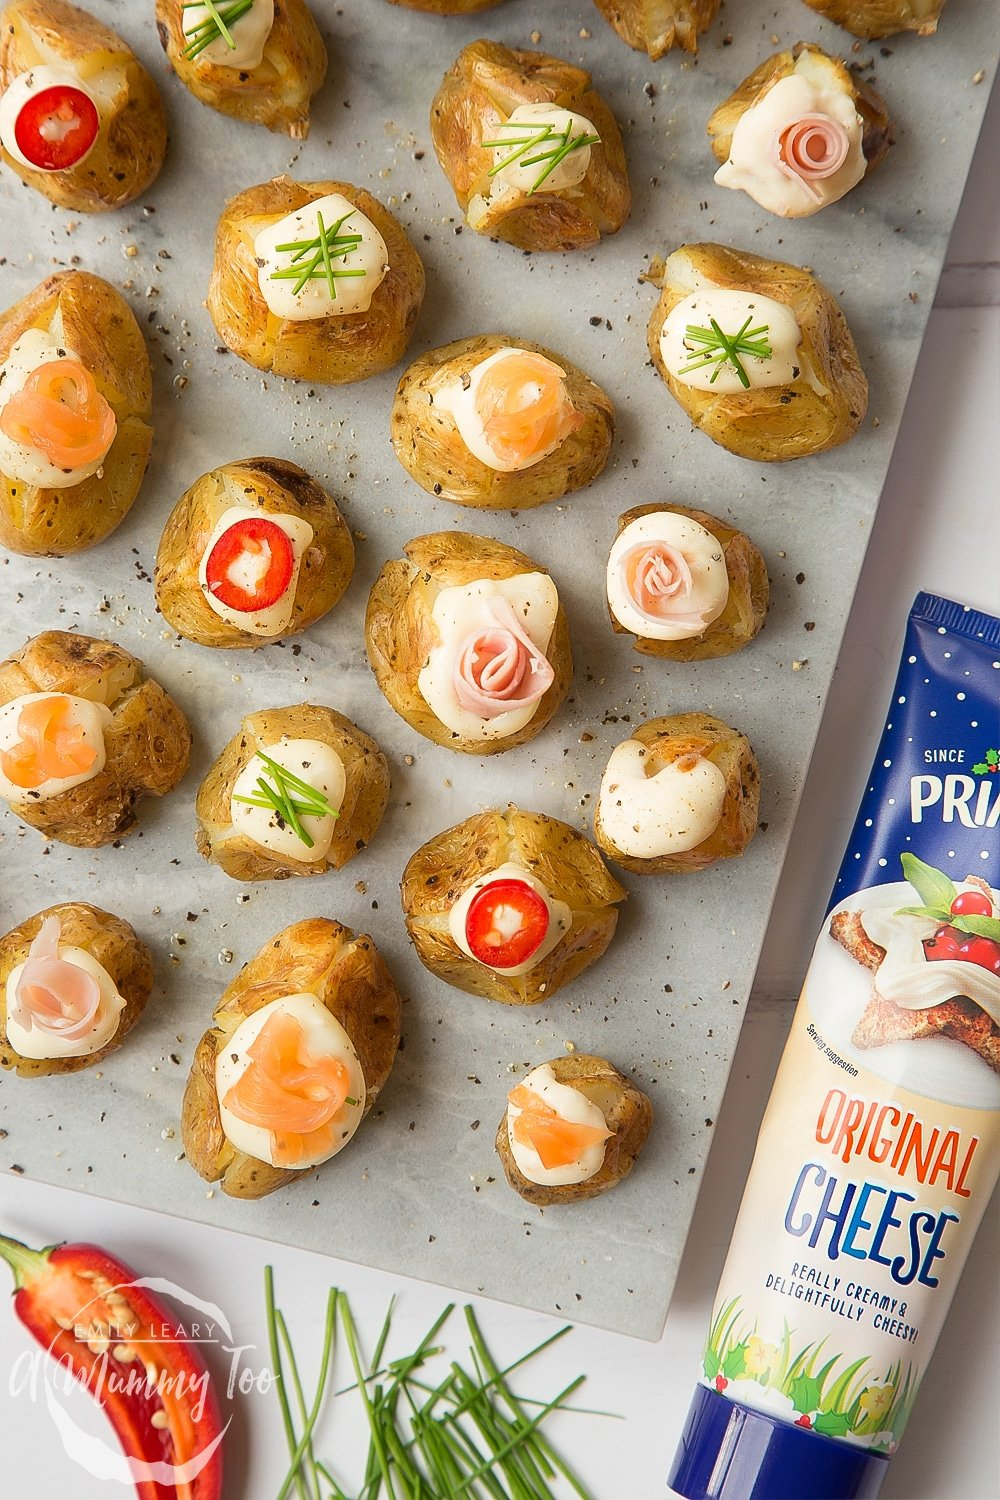 Stuffed mini baked potatoes topped with Primula cheese, peppers, chives, ham and salmon - a delicious festive starter or snack